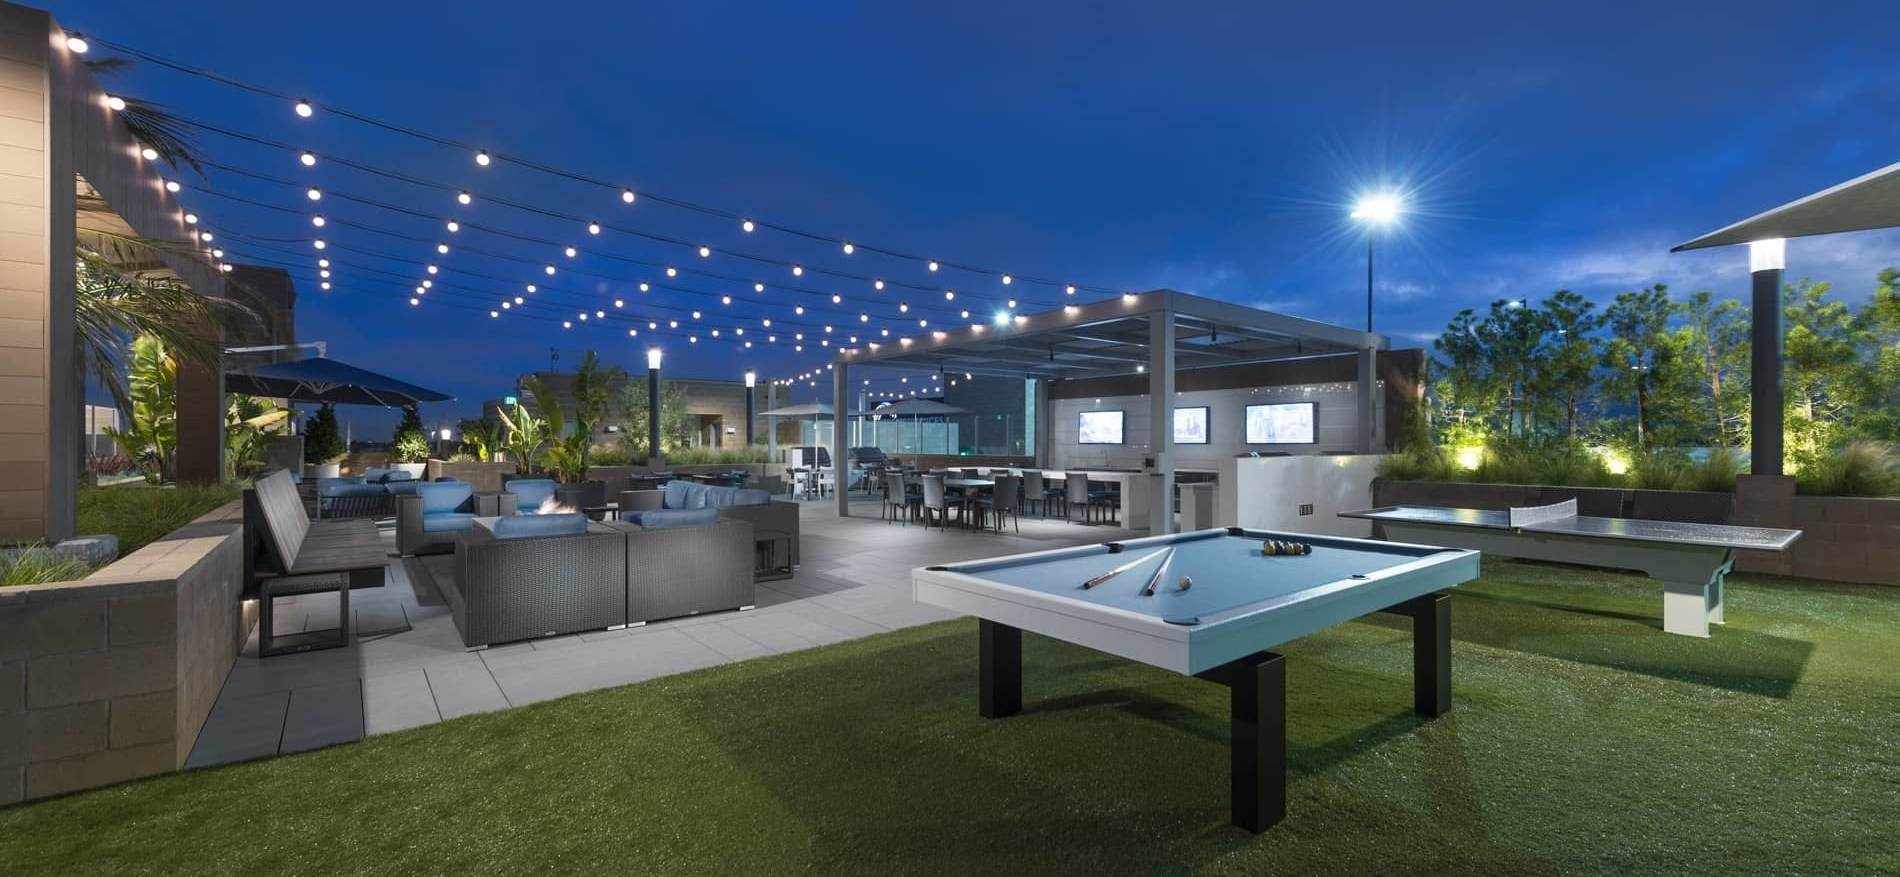 20 Best Apartments For Rent In Irvine, Ca From $870! for The Best Ideas For Apartments For Rent In Garden Grove